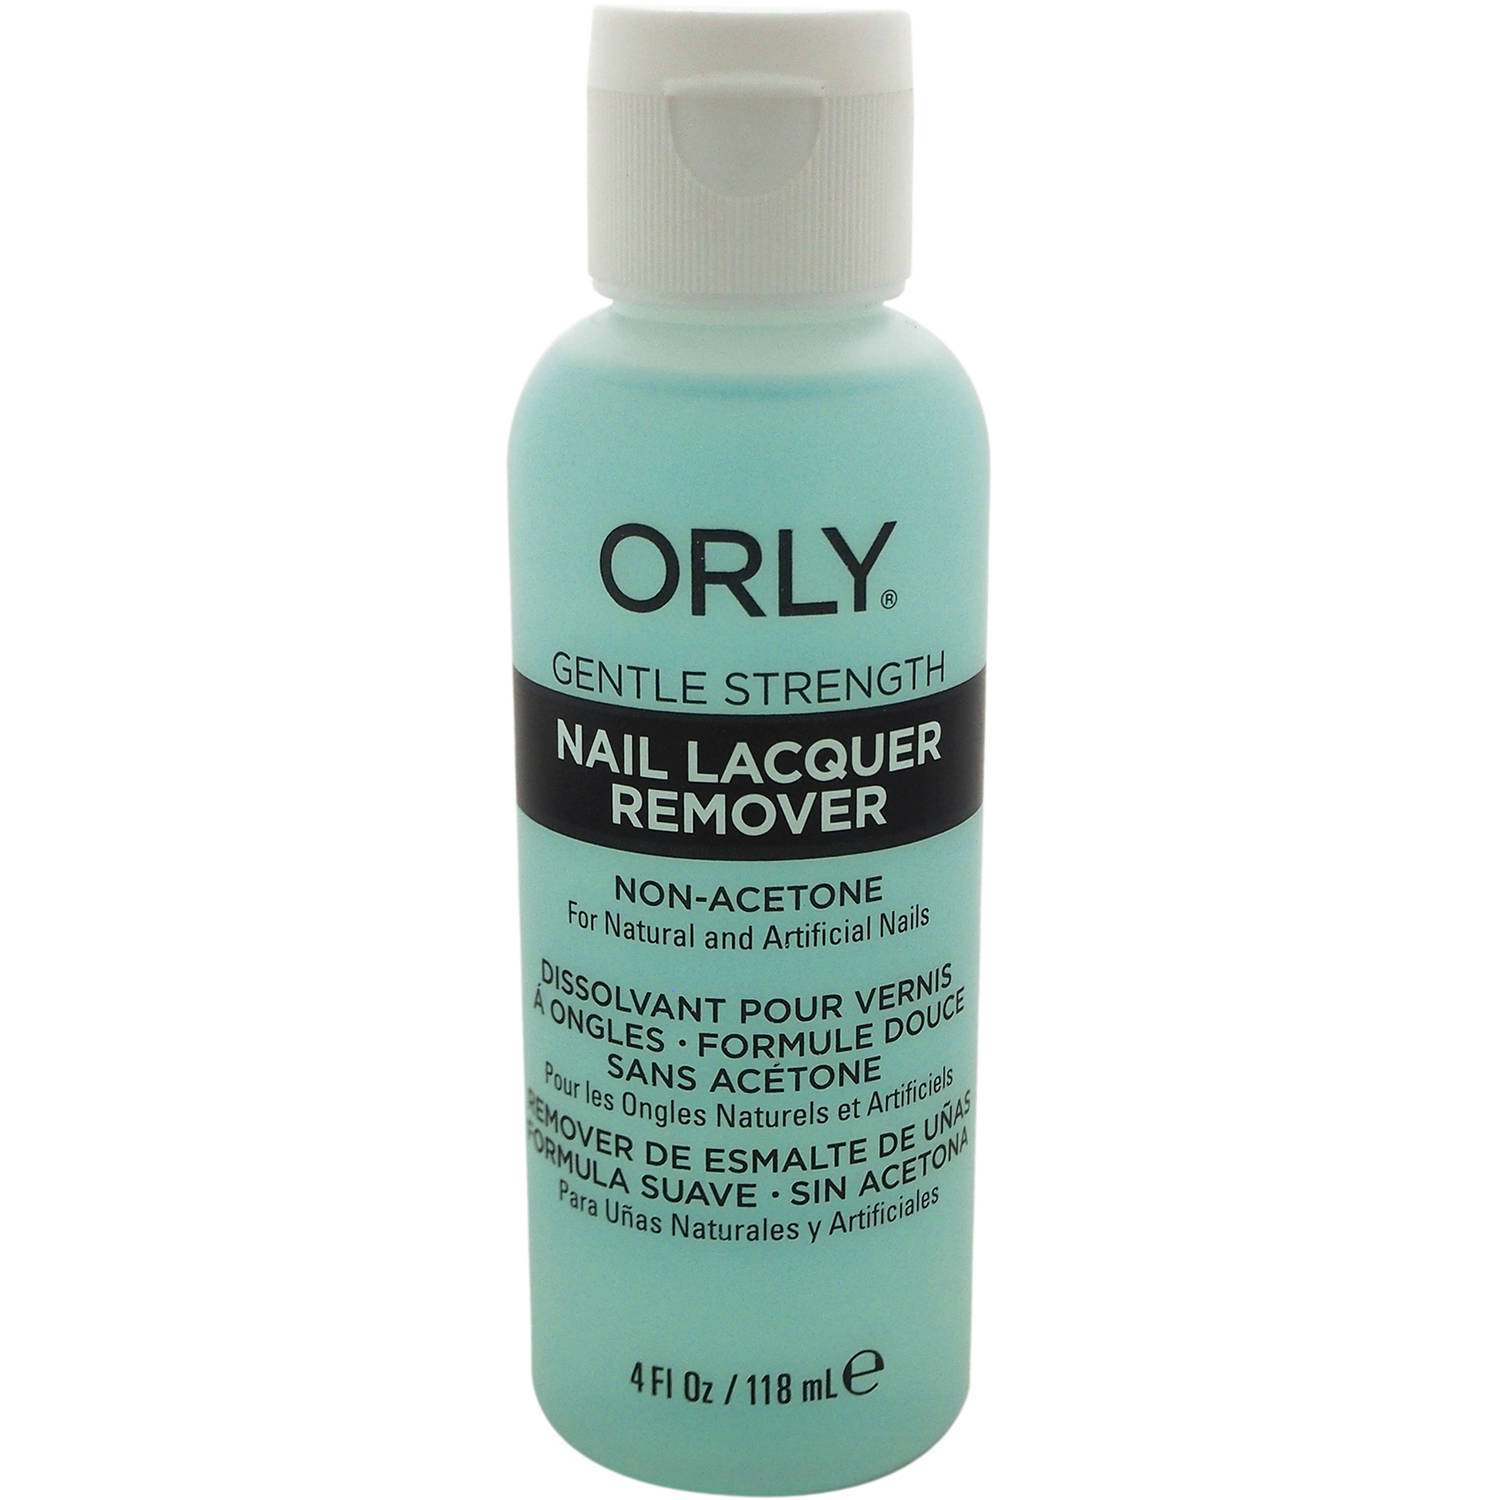 ORLY for Women Gentle Strength Nail Lacquer Remover